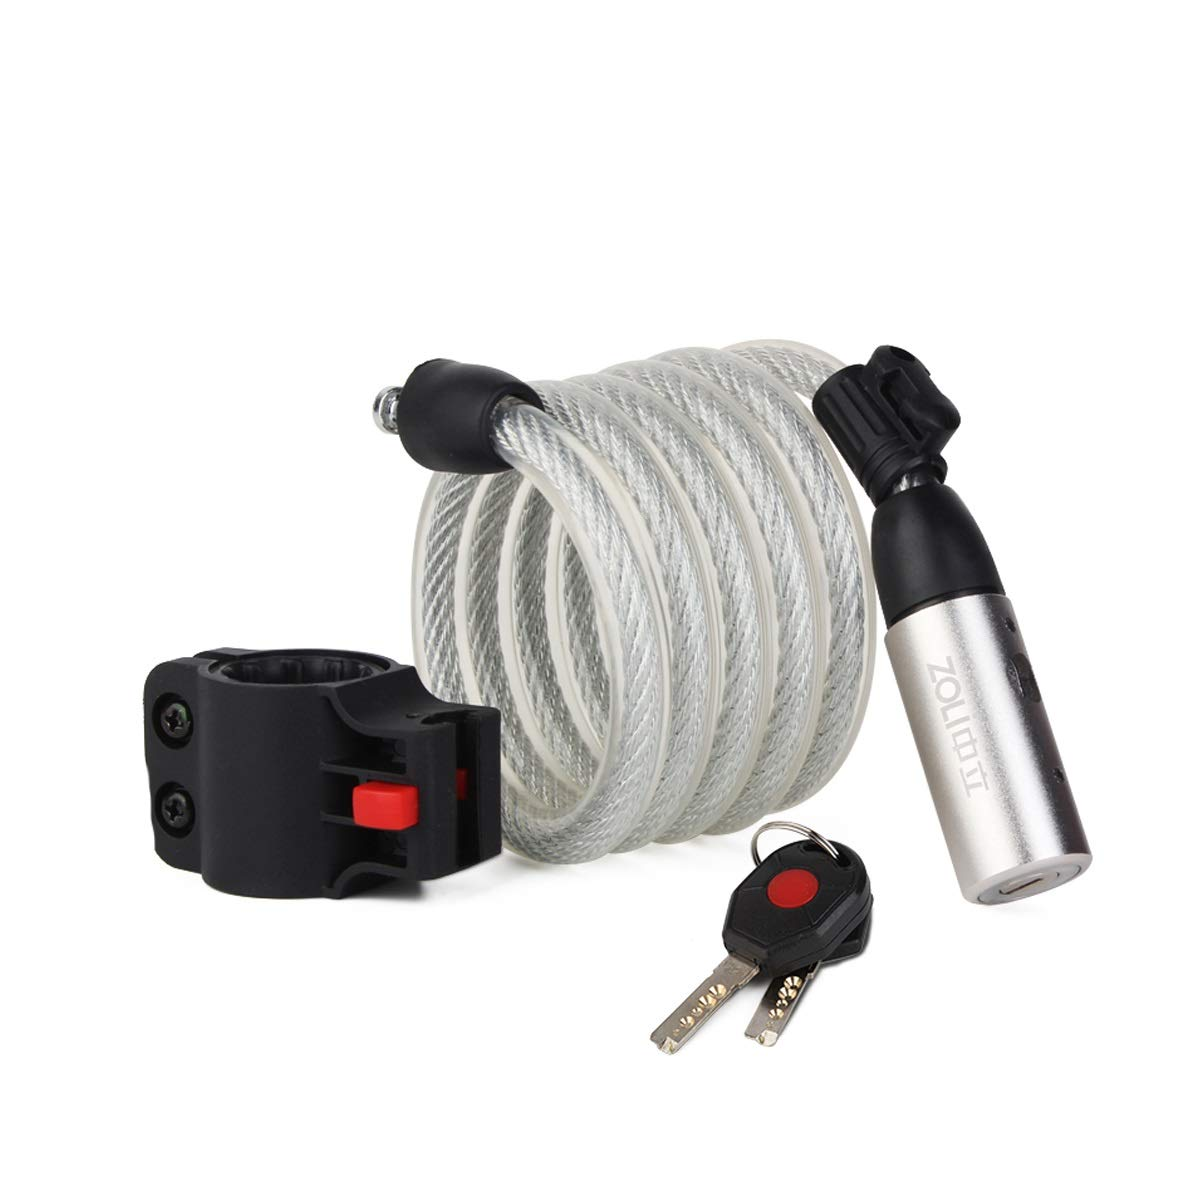 HUIJUNWENTI Bicycle Lock, Mountain Bike Anti-Theft Lock, Steel Cable Lock, Wire Lock, Road Bike Lock, Fixed car Lock, Bicycle Accessories, Black, White Safe and Reliable, (Color : White)